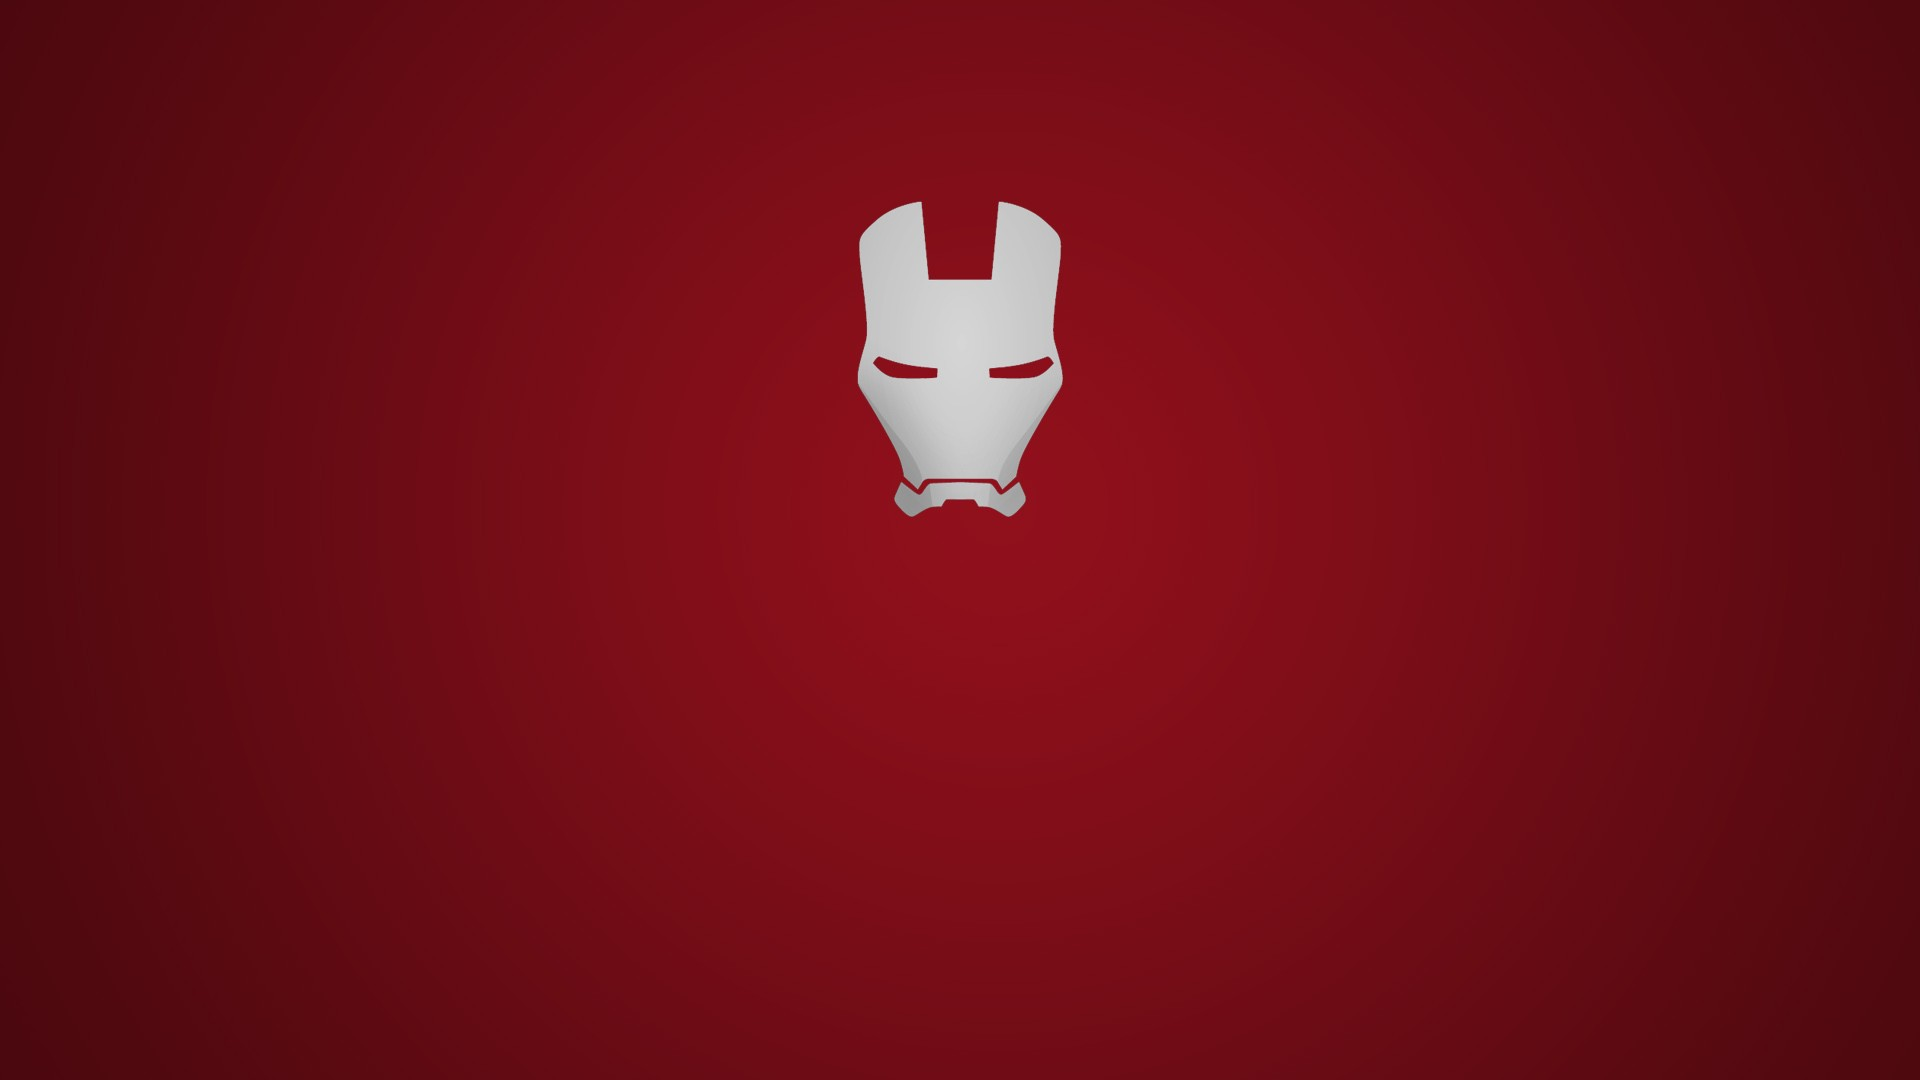 iron man simple 1 android one